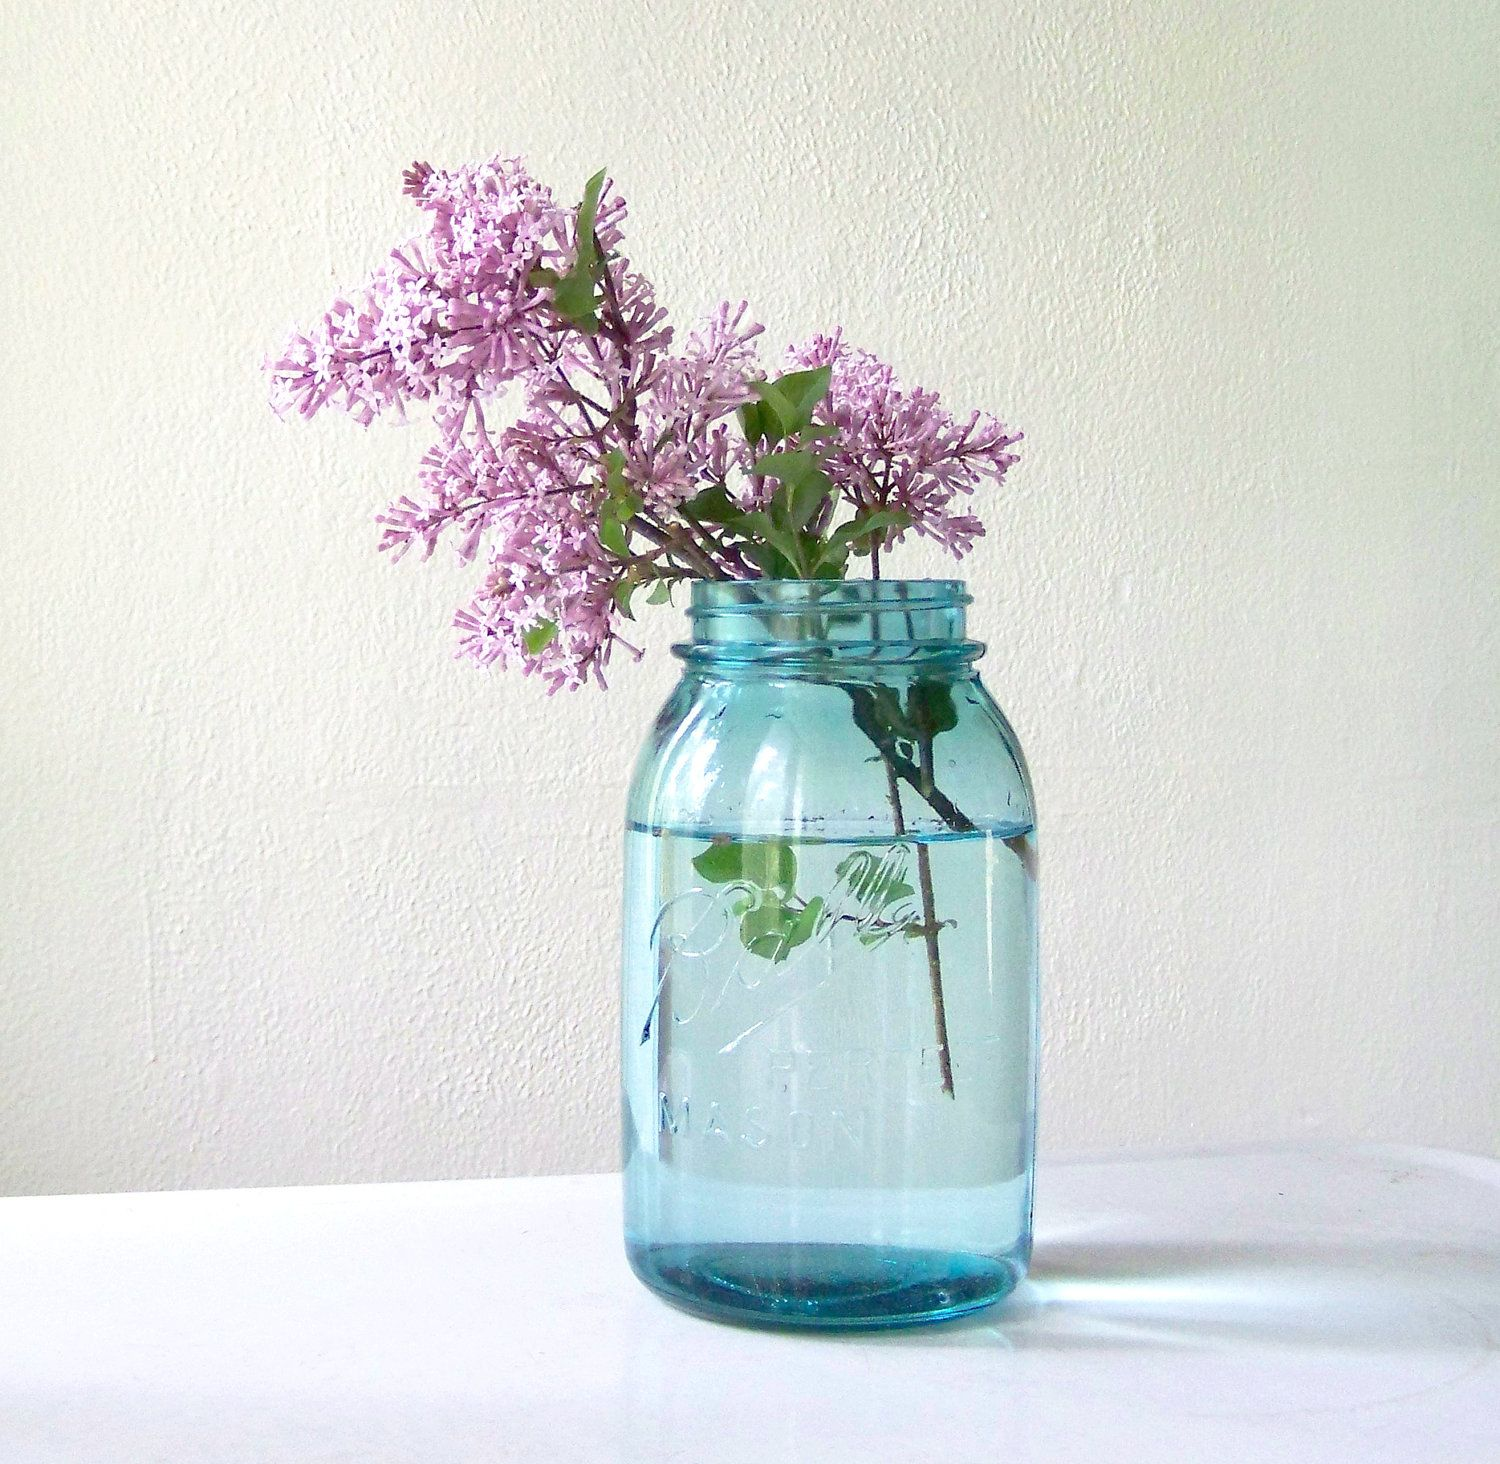 Blue Mason Jar By Ball Quart Size Wedding Decor By Midwestfinds Quot I Do Quot Blue Mason Jars